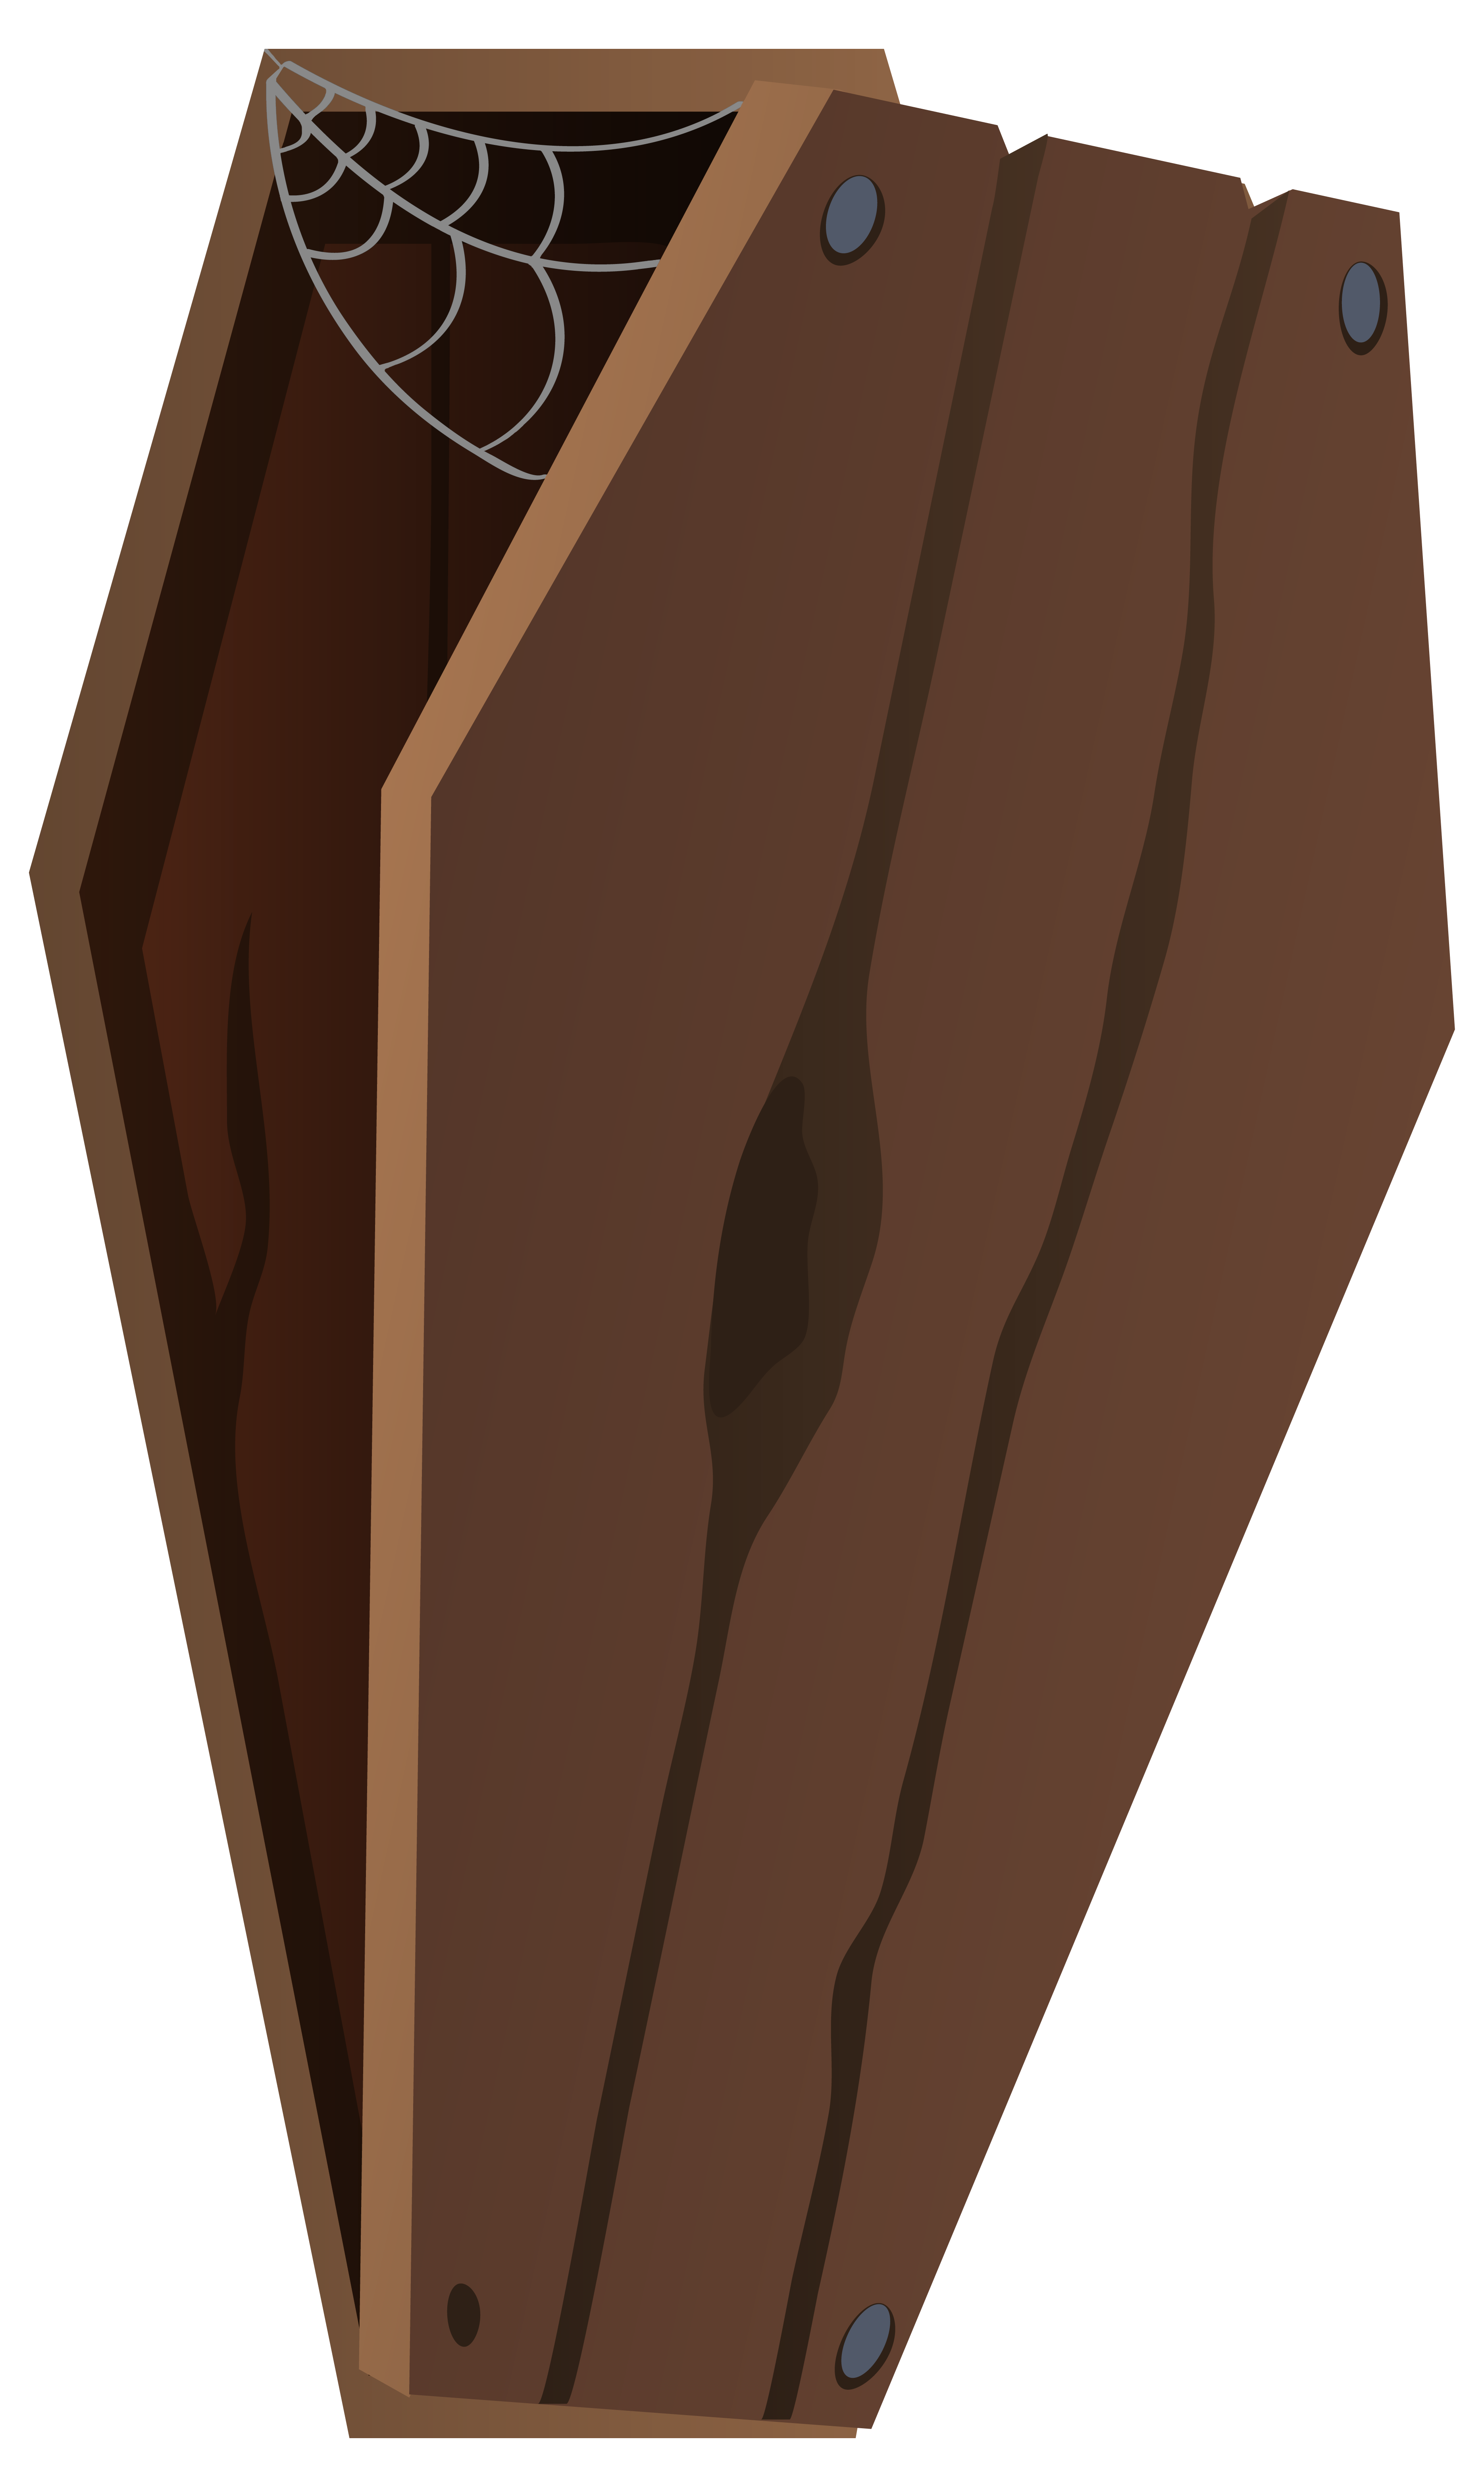 Coffin clipart. Vertical png image gallery